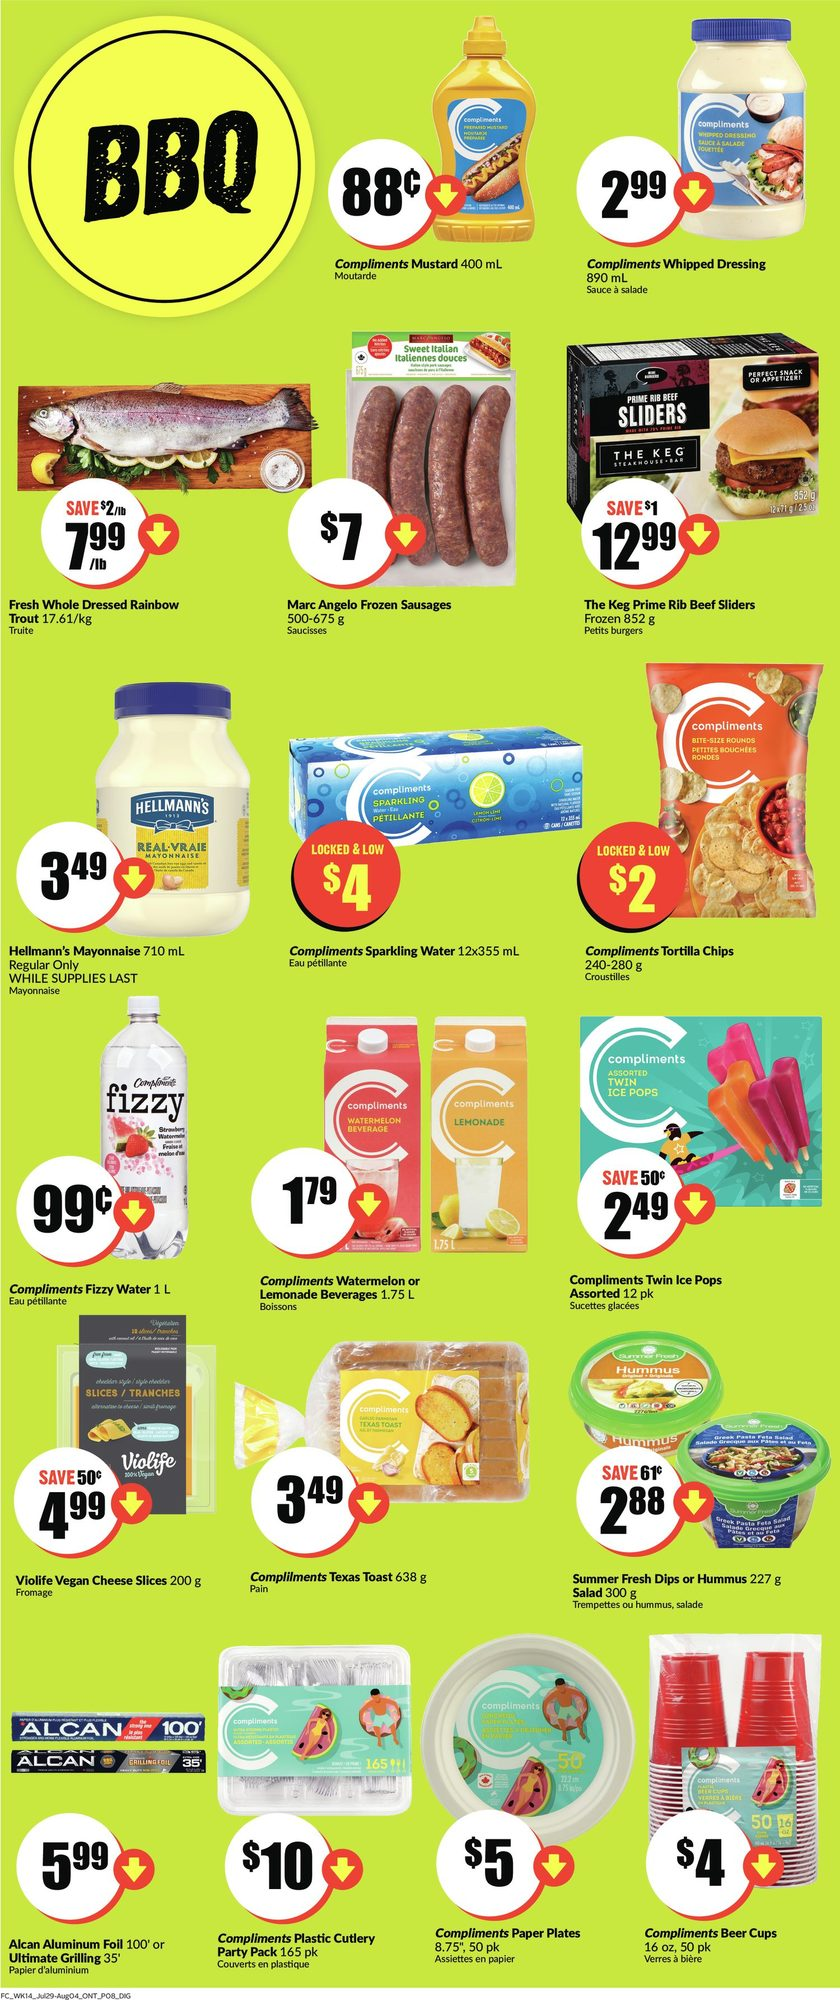 FreshCo - Weekly Flyer Specials - Page 10